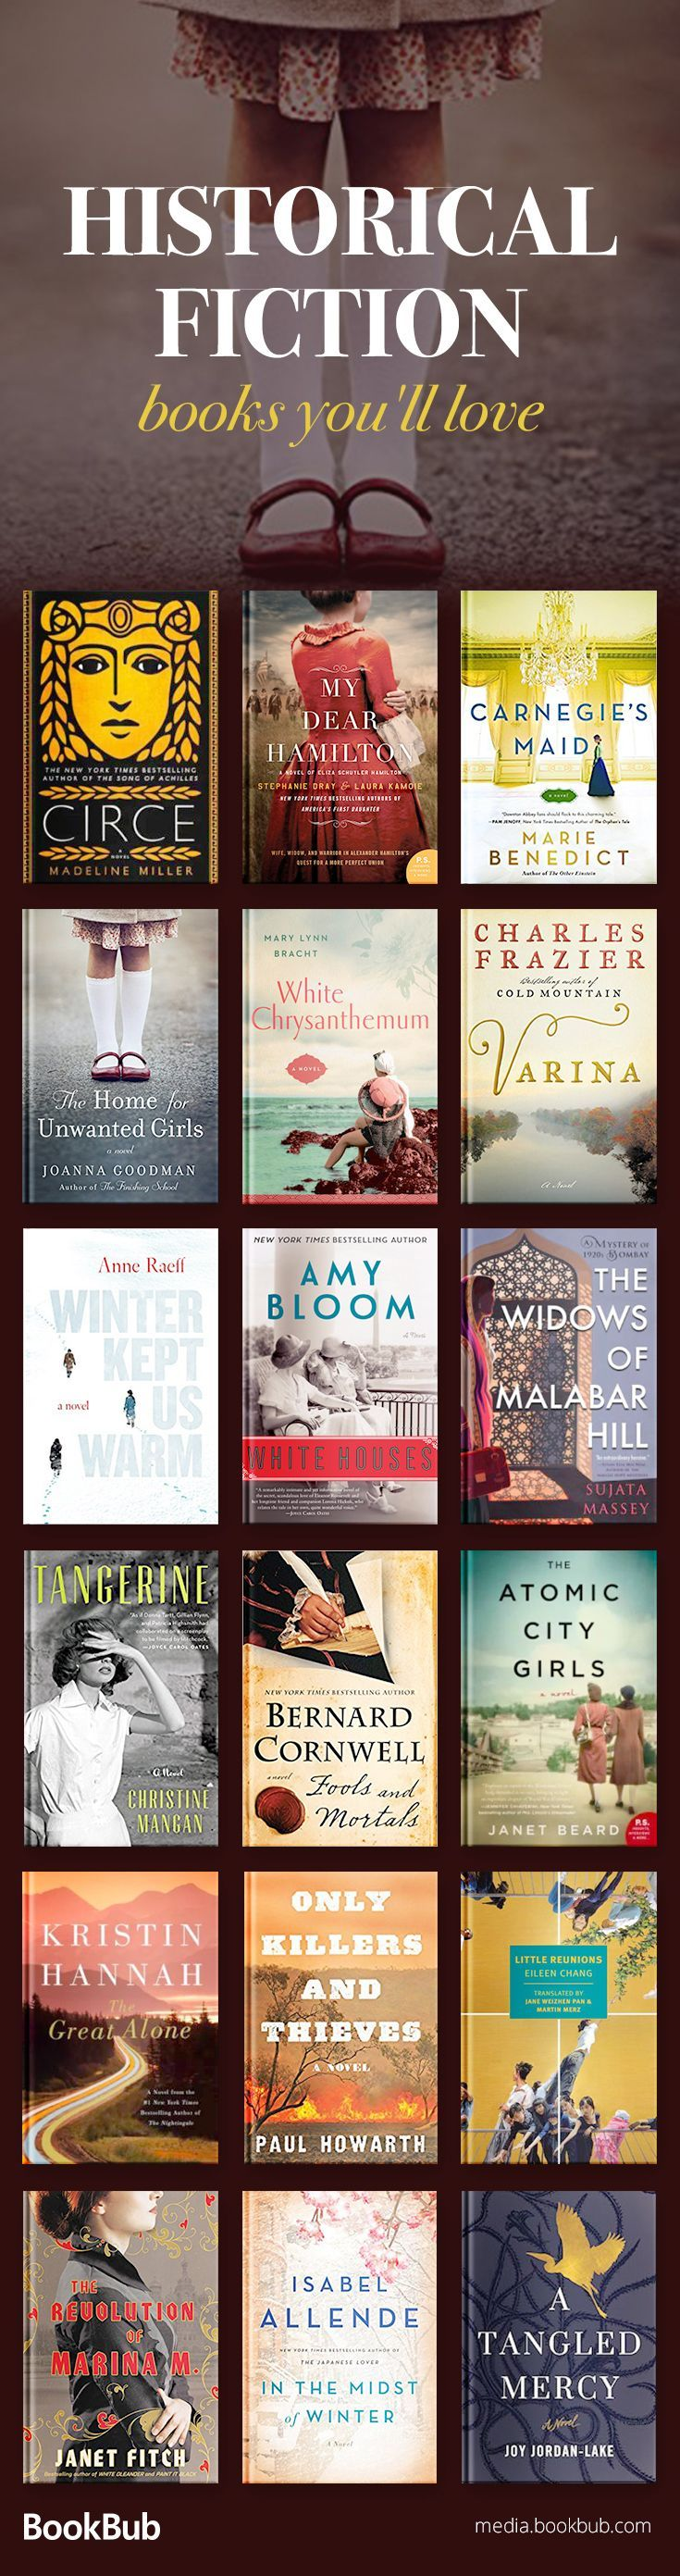 Historical fiction books worth reading in 2018, including WW2 books, books based on true stories, and great books for women and men. Click for the full list of bestselling novels, and for book ideas for book club! #FictionBooks